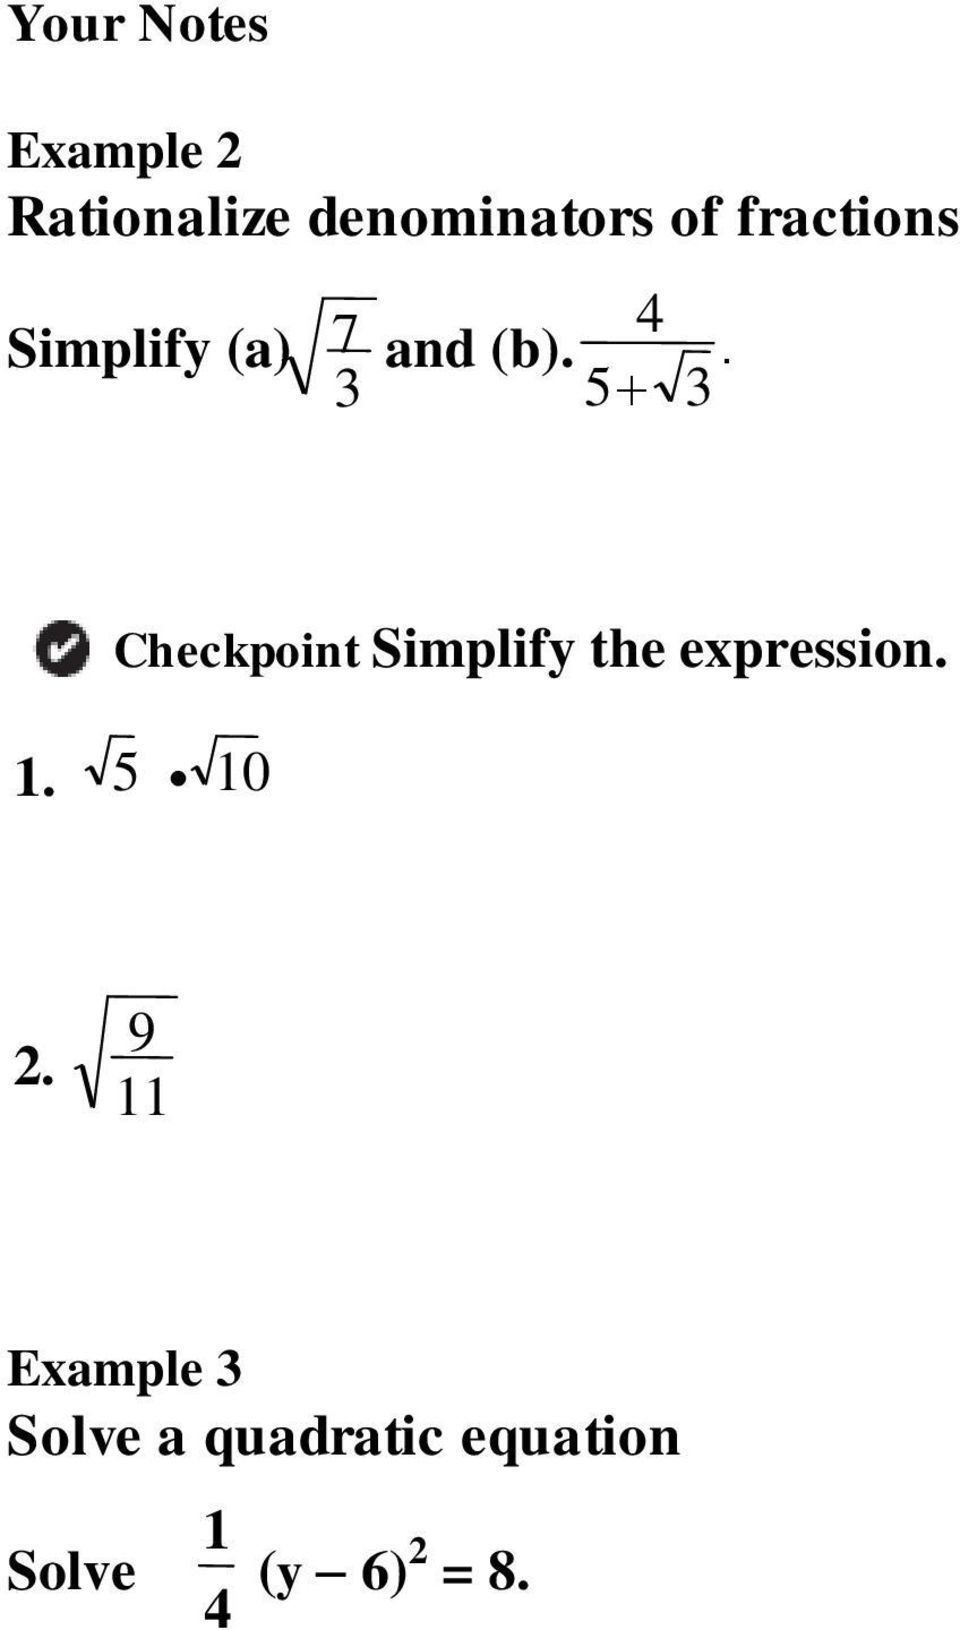 Checkpoint Simplify the expression. 1. 5 10 2.